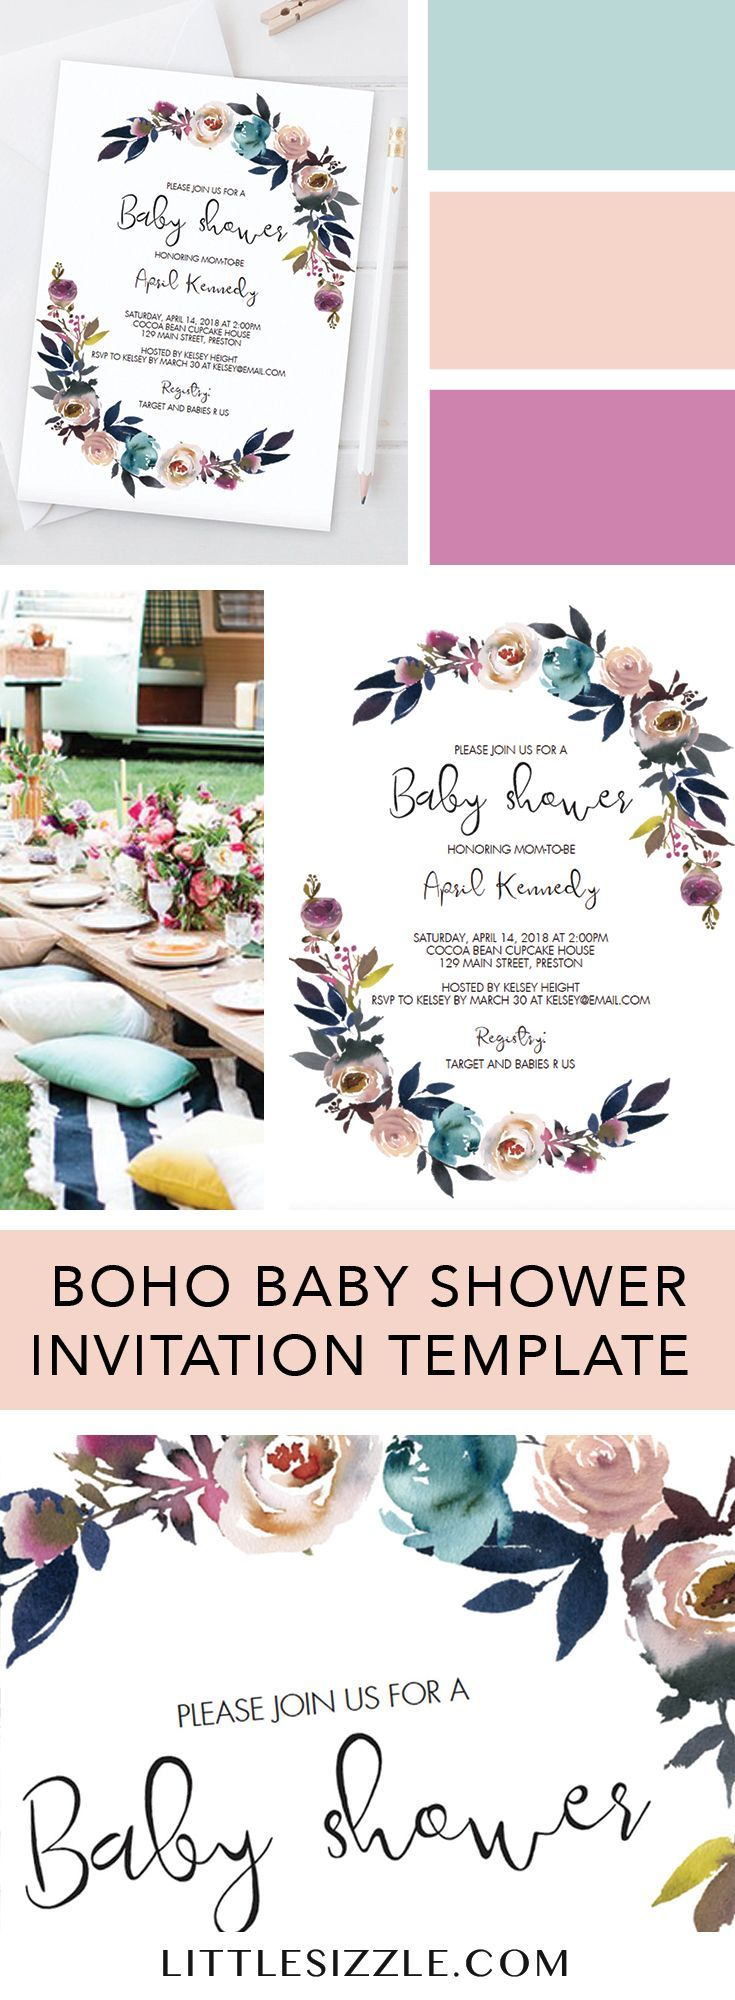 Baby shower invitation ideas.